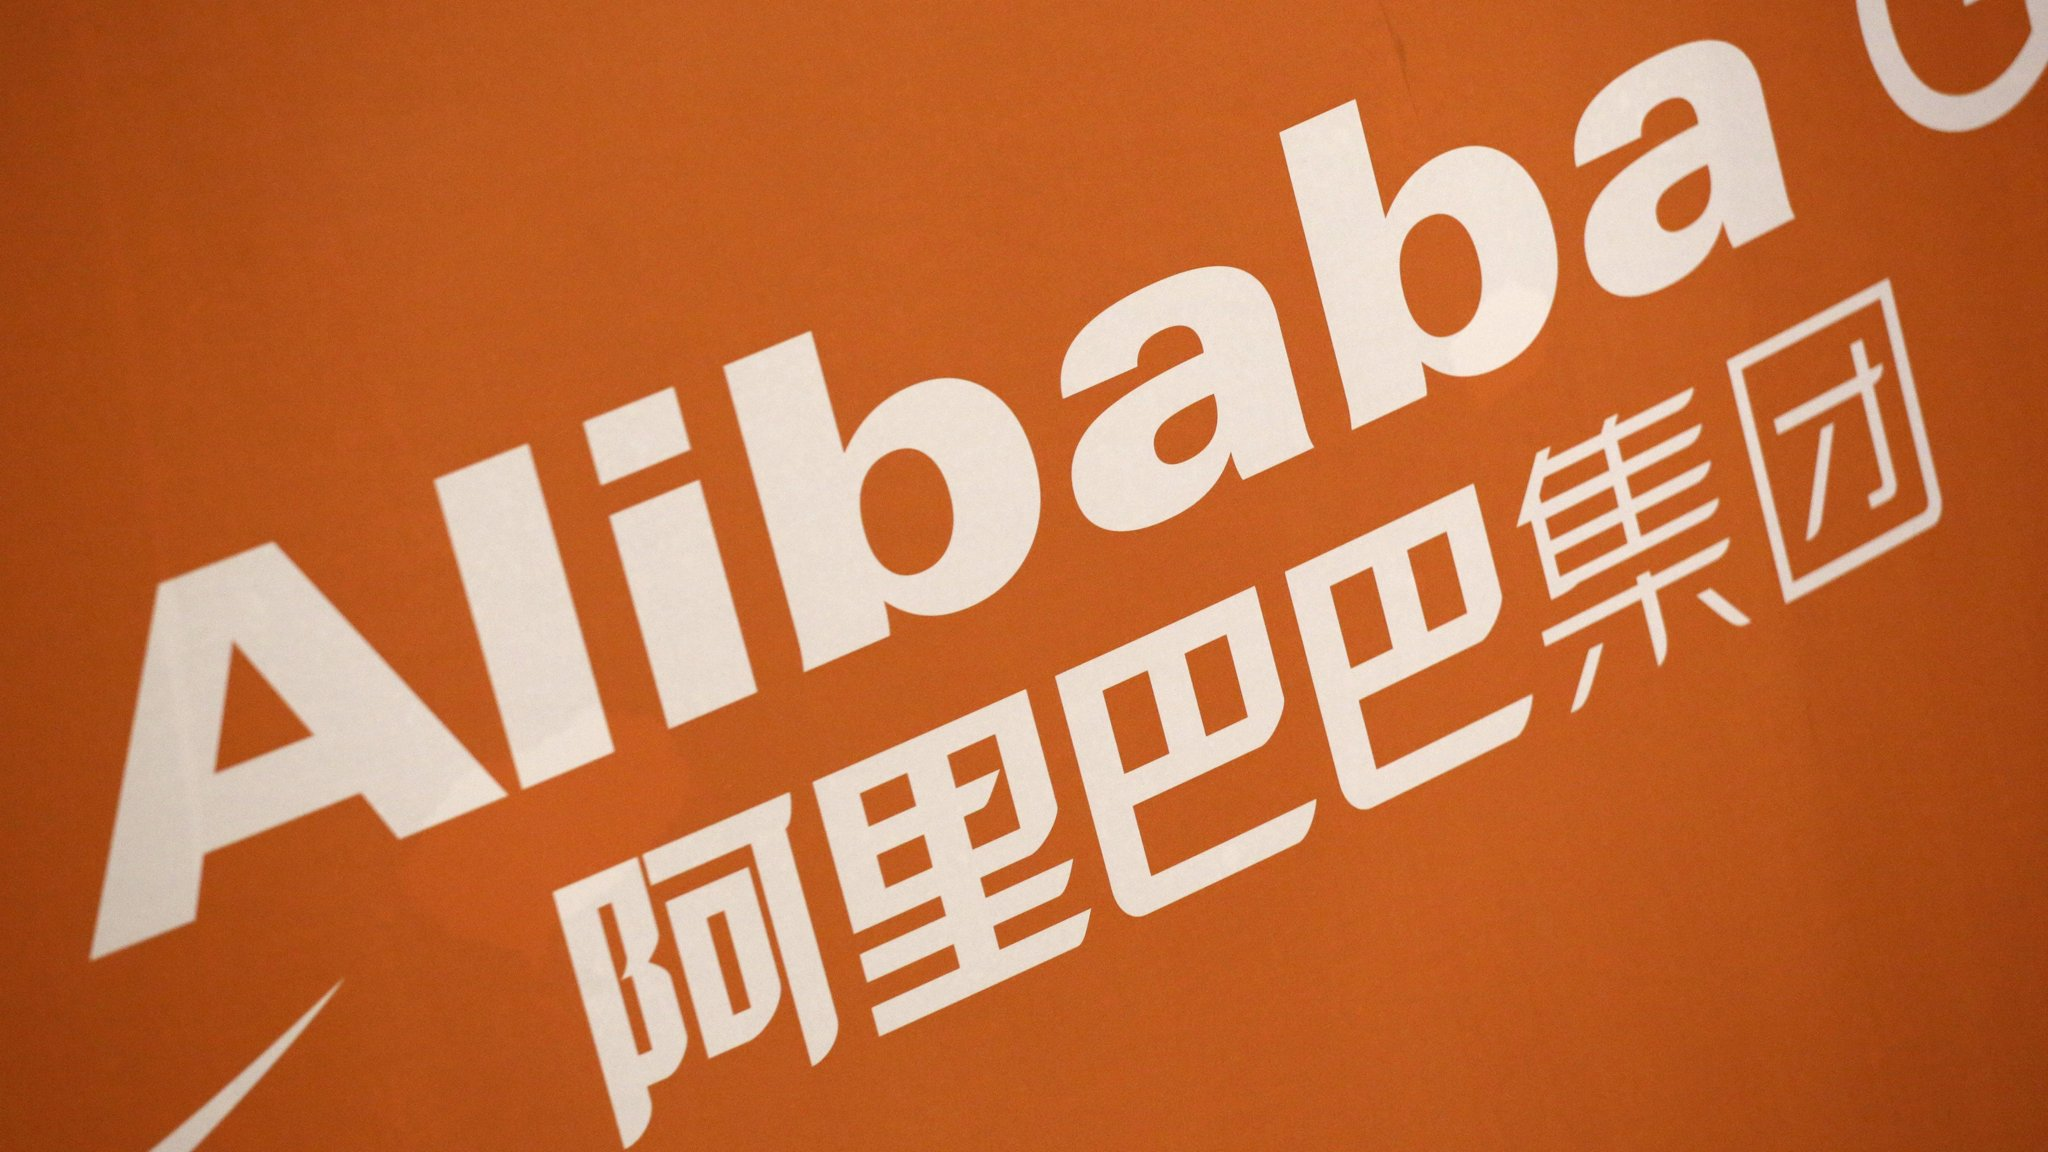 Alibaba and Microsoft systems beat humans in Stanford reading test